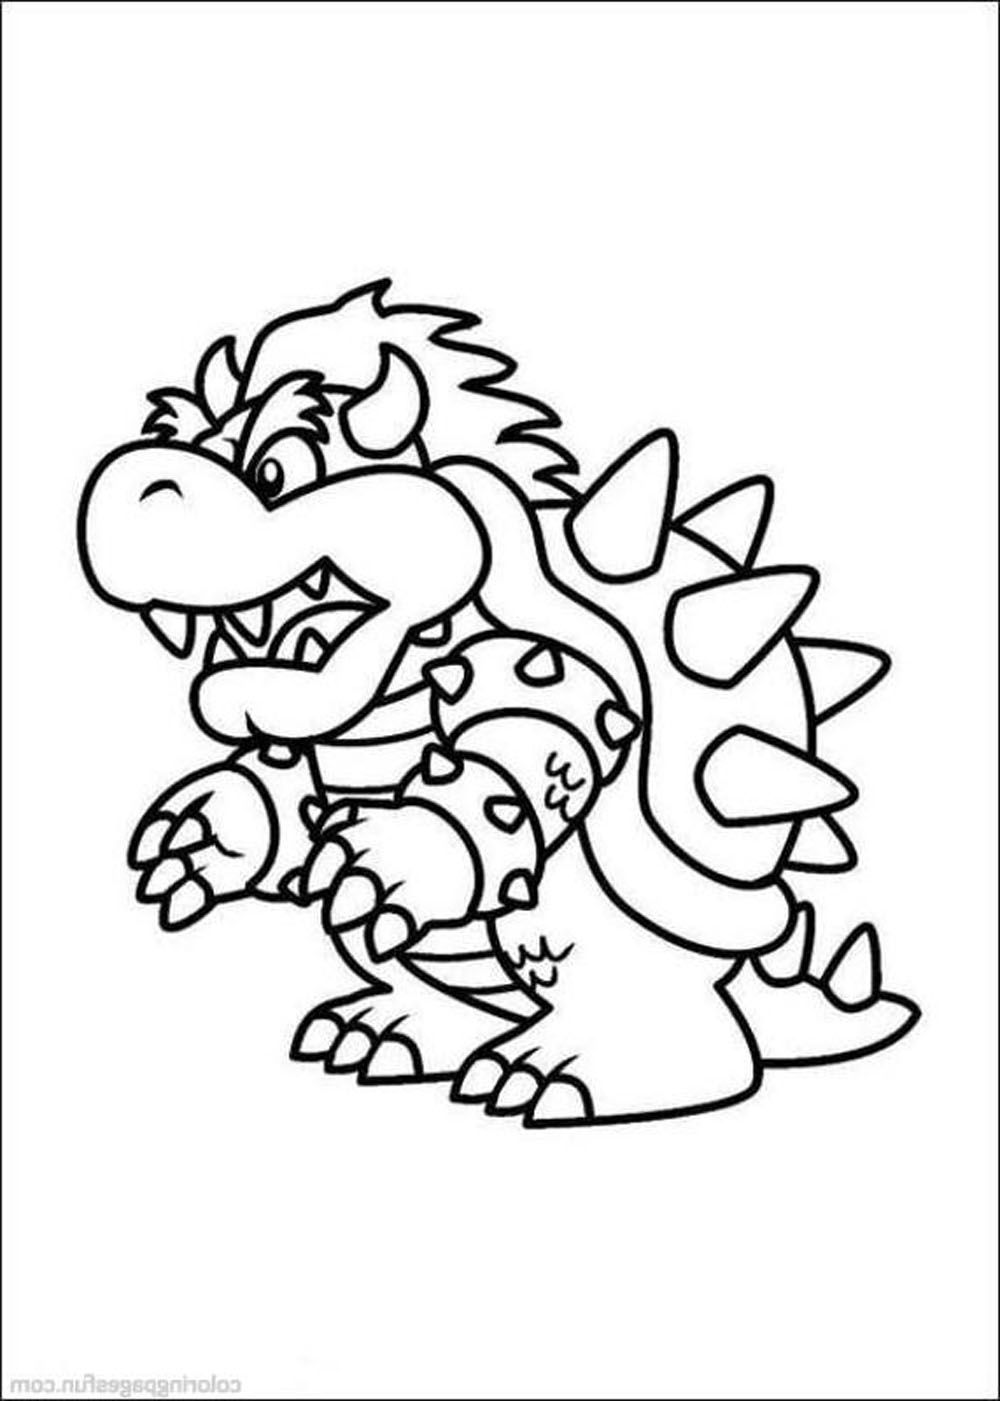 Coloring Pages Super Mario Color My World Mario Coloring Pages